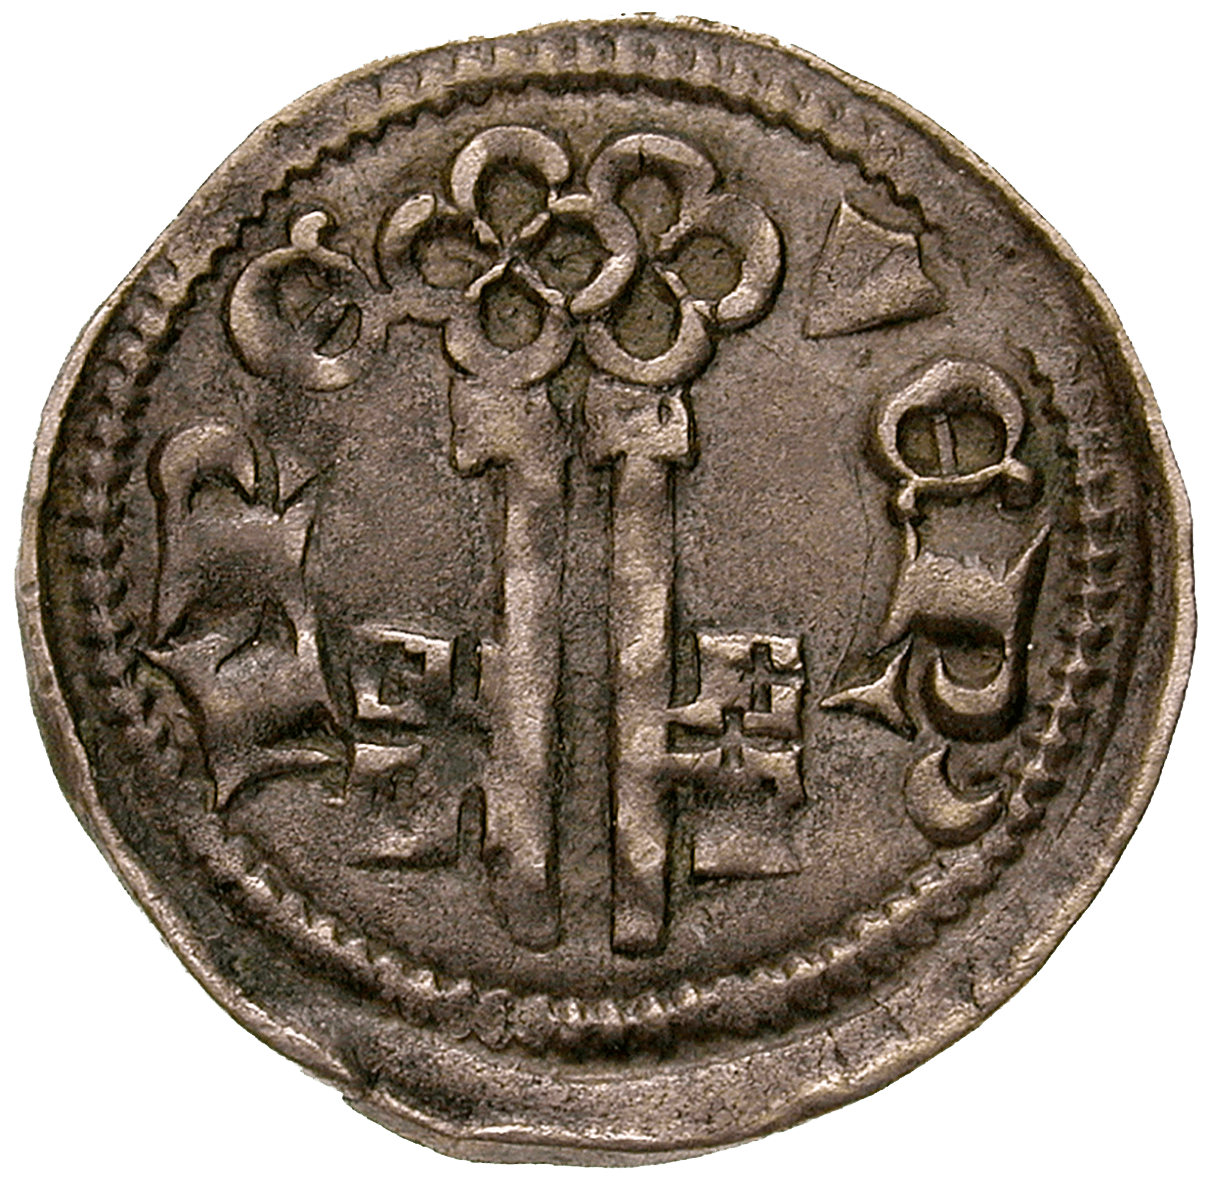 Holy Roman Empire, Prince-Bishopric of Treves, Baldwin of Luxembourg, Denarius (reverse)